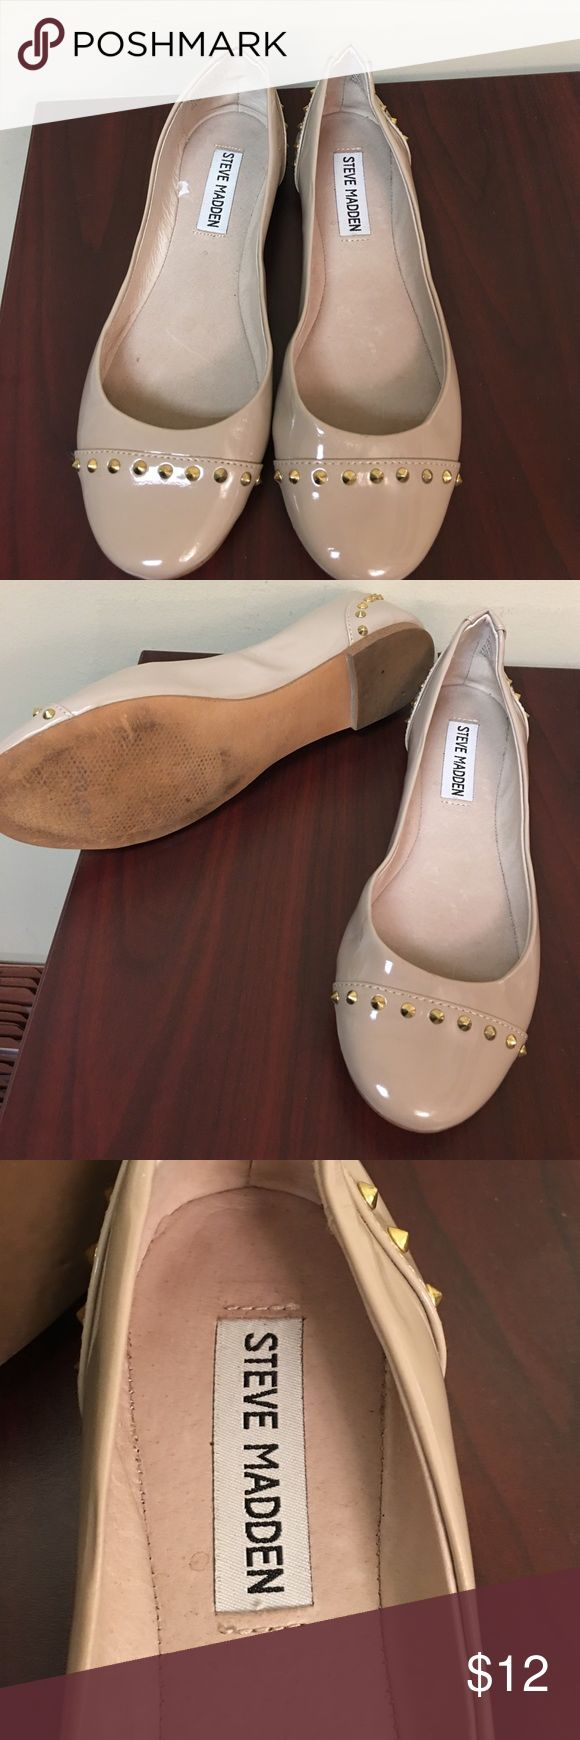 Steve Madden Flats Nude Colored Flats worn a couple times, no tags & no box Steve Madden Shoes Flats & Loafers